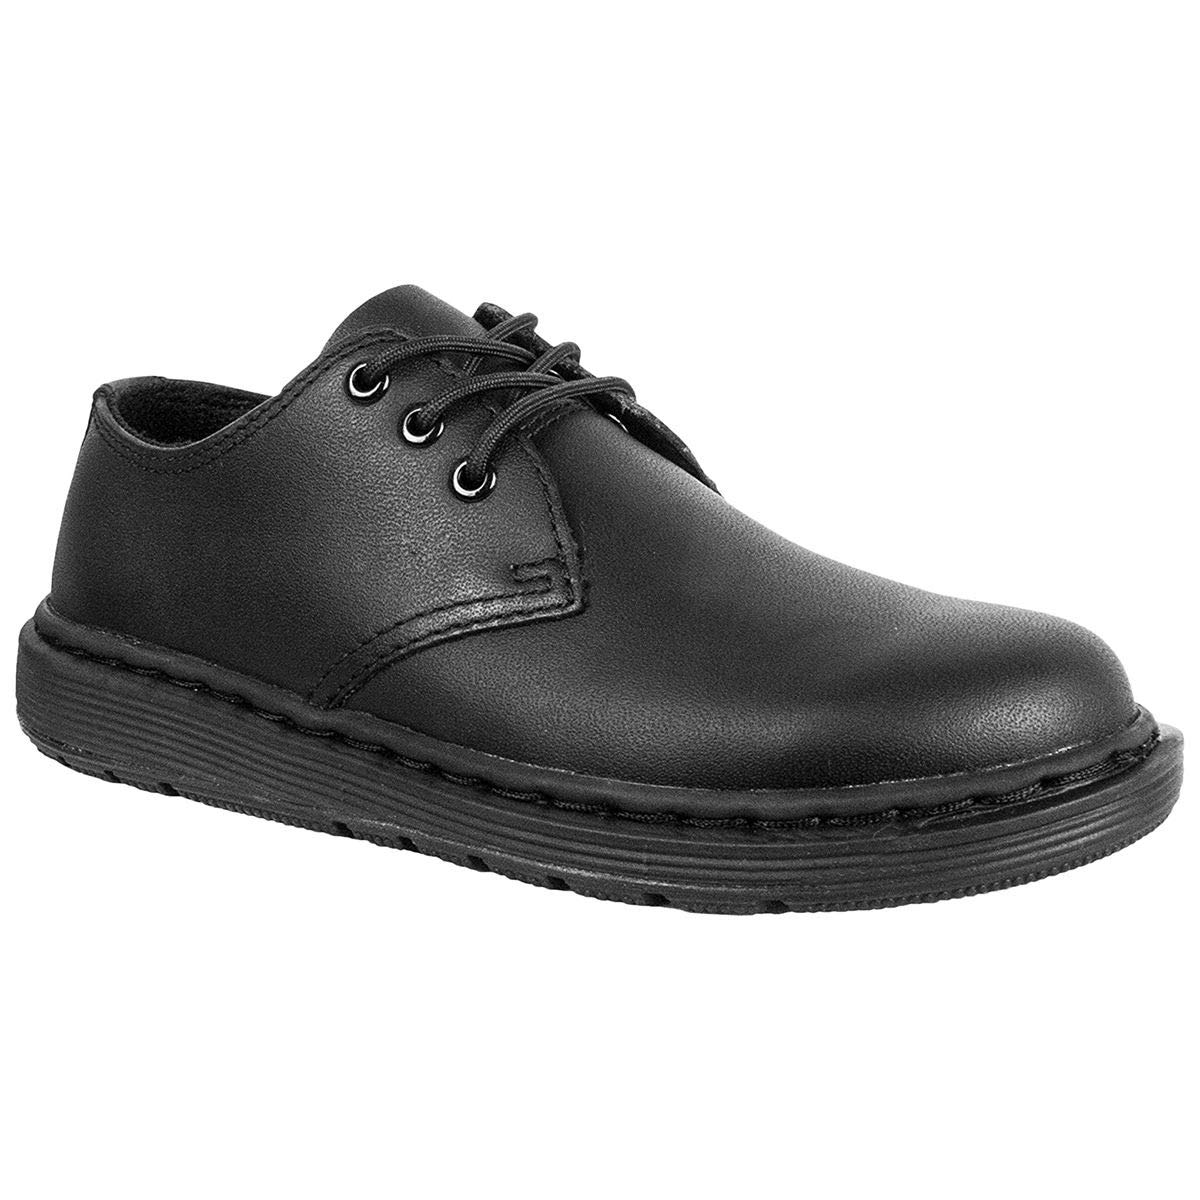 Dr. Martens Unisex Youth Cavendish BTS Black Lace Up Leather Shoes Size 5